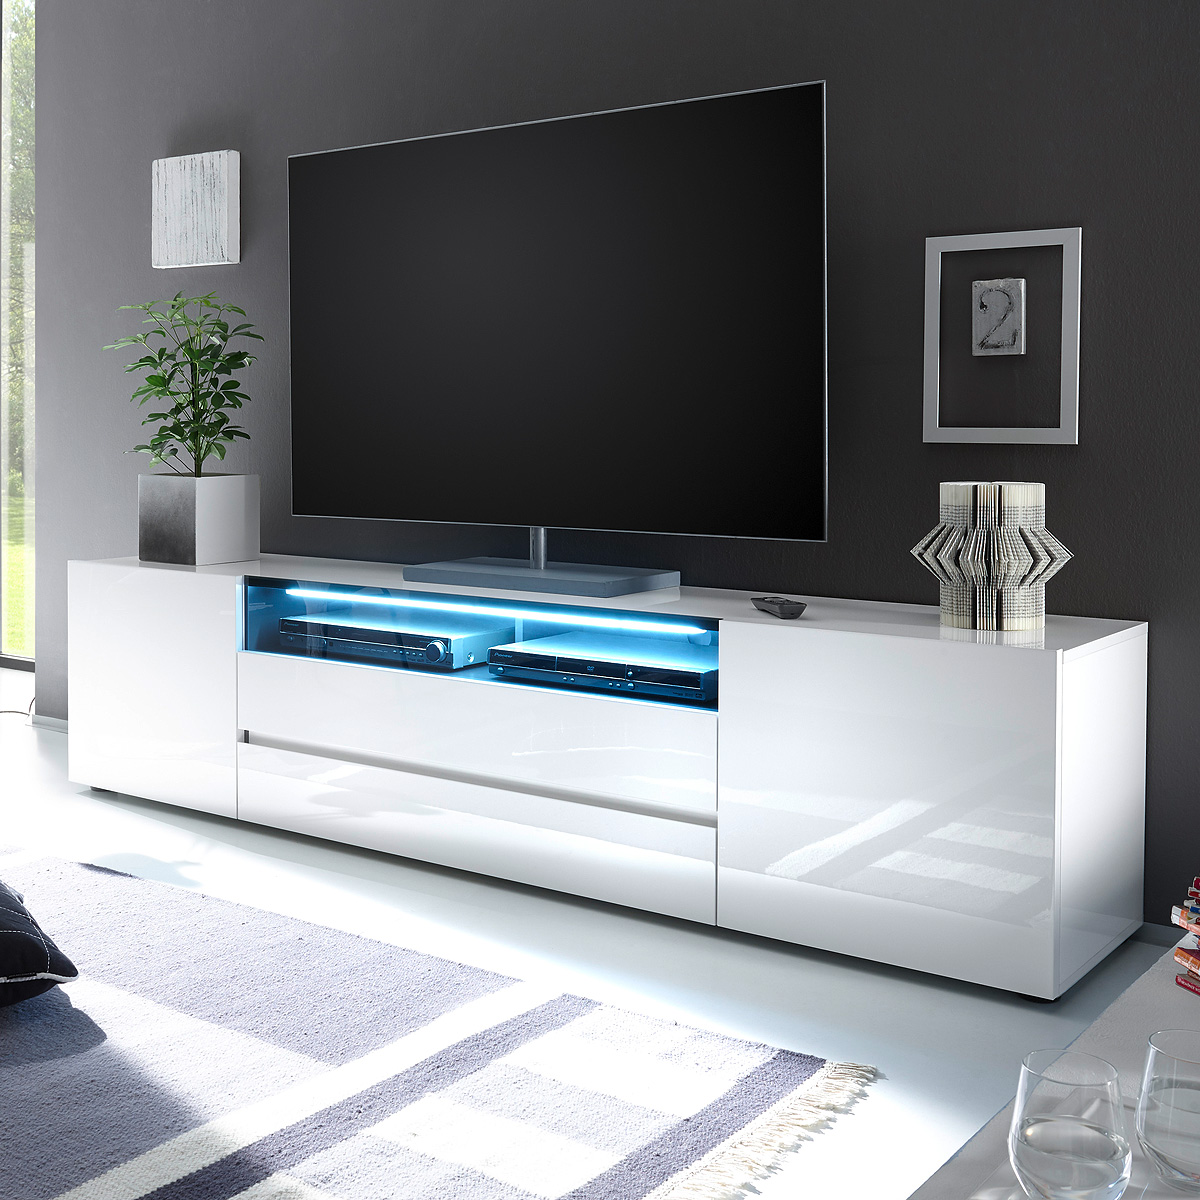 tv board vicenza lowboard unterschrank in wei hochglanz lackiert 203 cm ebay. Black Bedroom Furniture Sets. Home Design Ideas